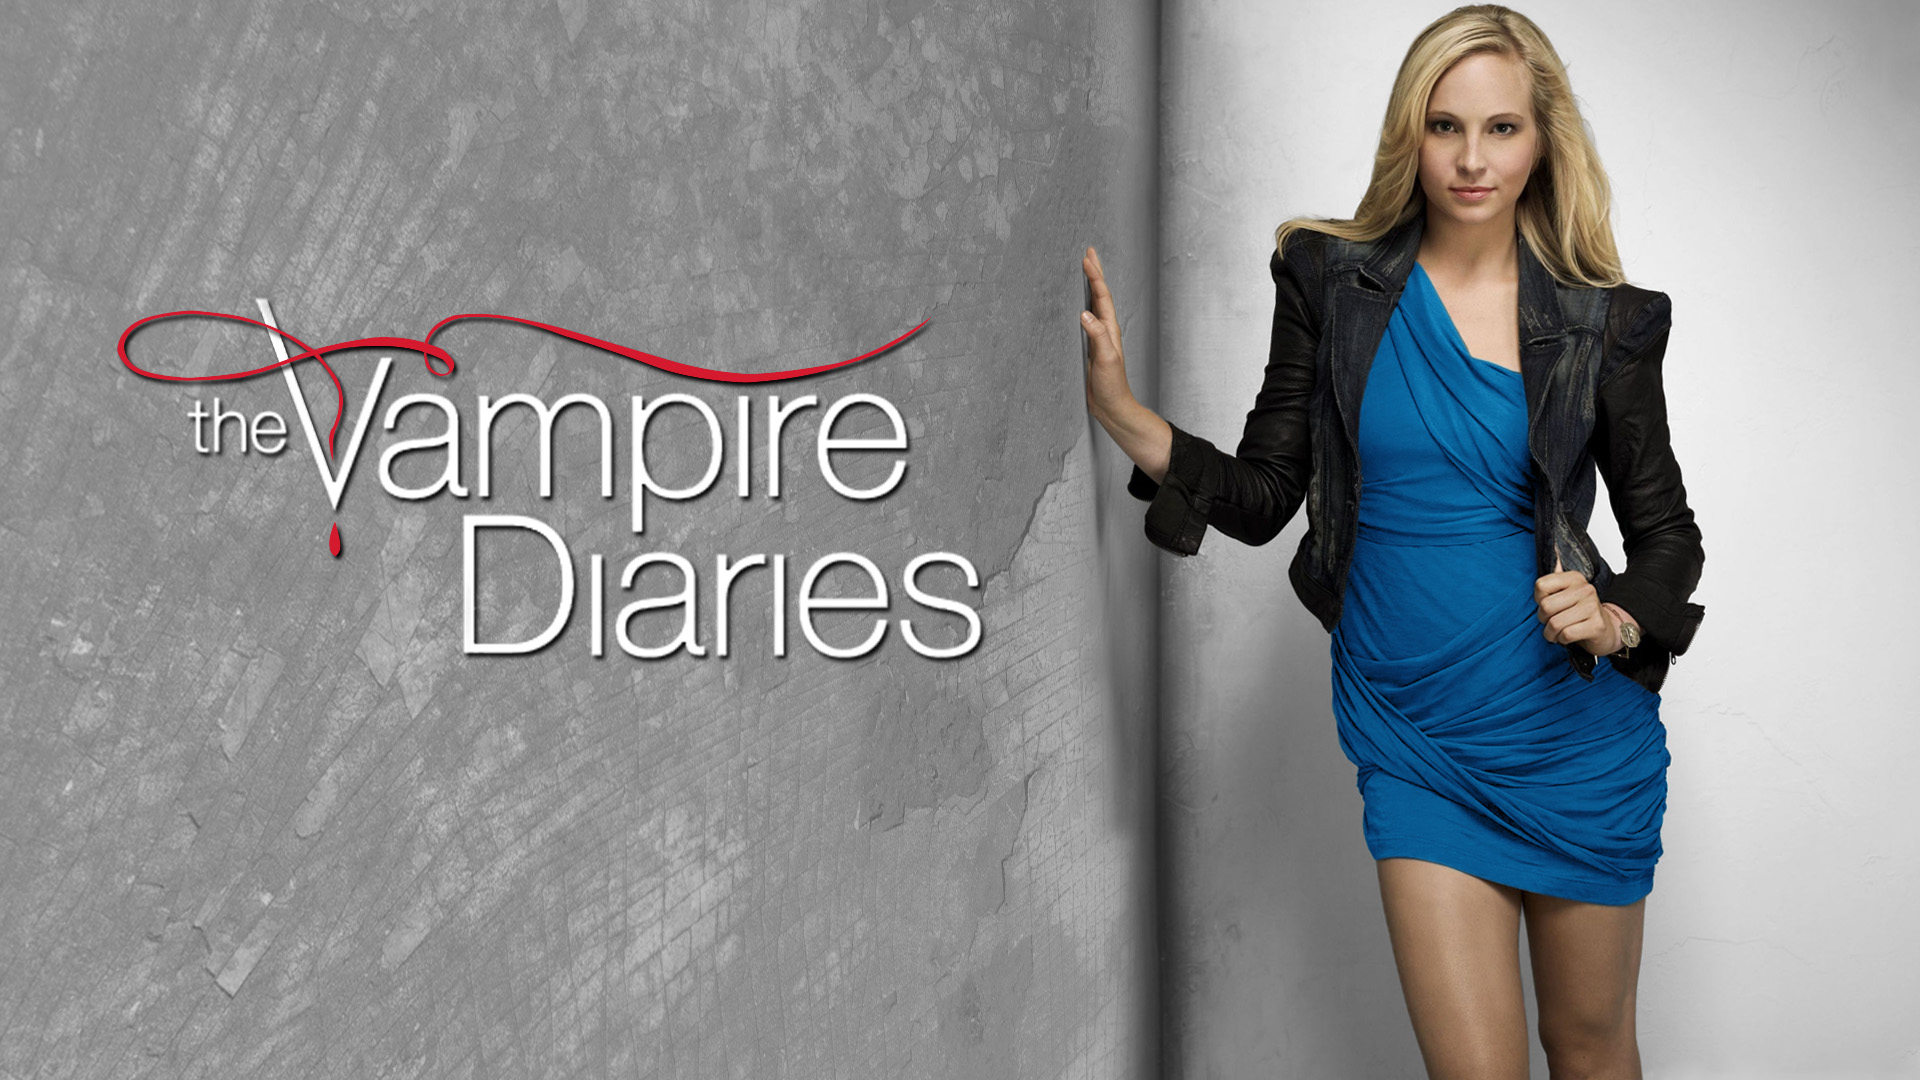 1920x1080 - Candice Accola Wallpapers 25